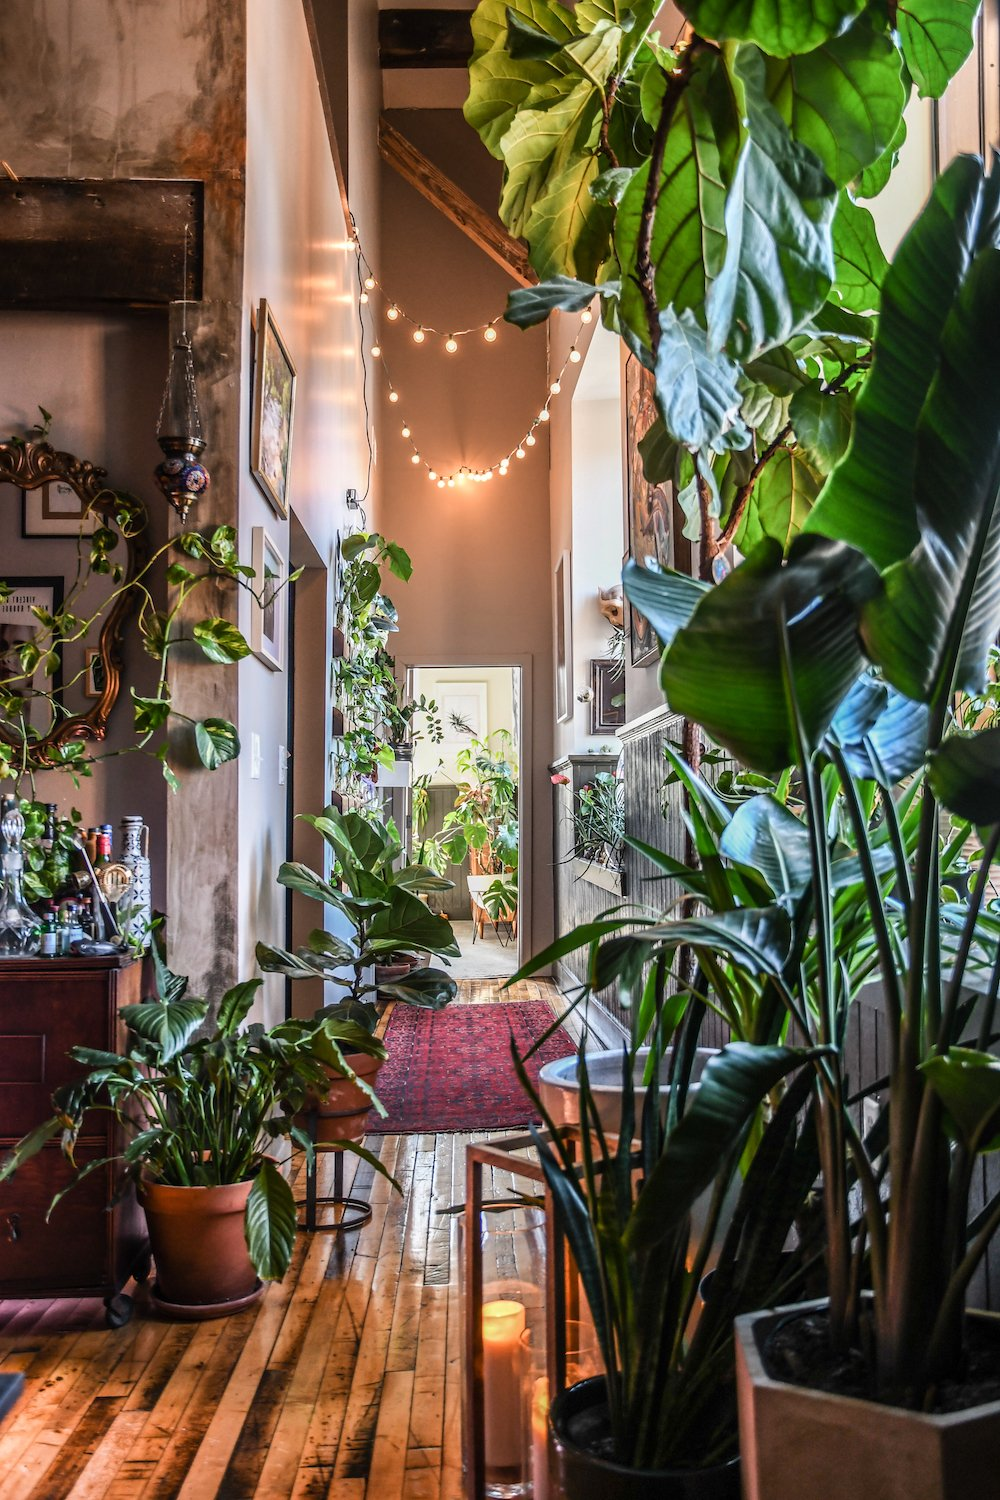 Hilton Carter's Plant-Filled Home Tour